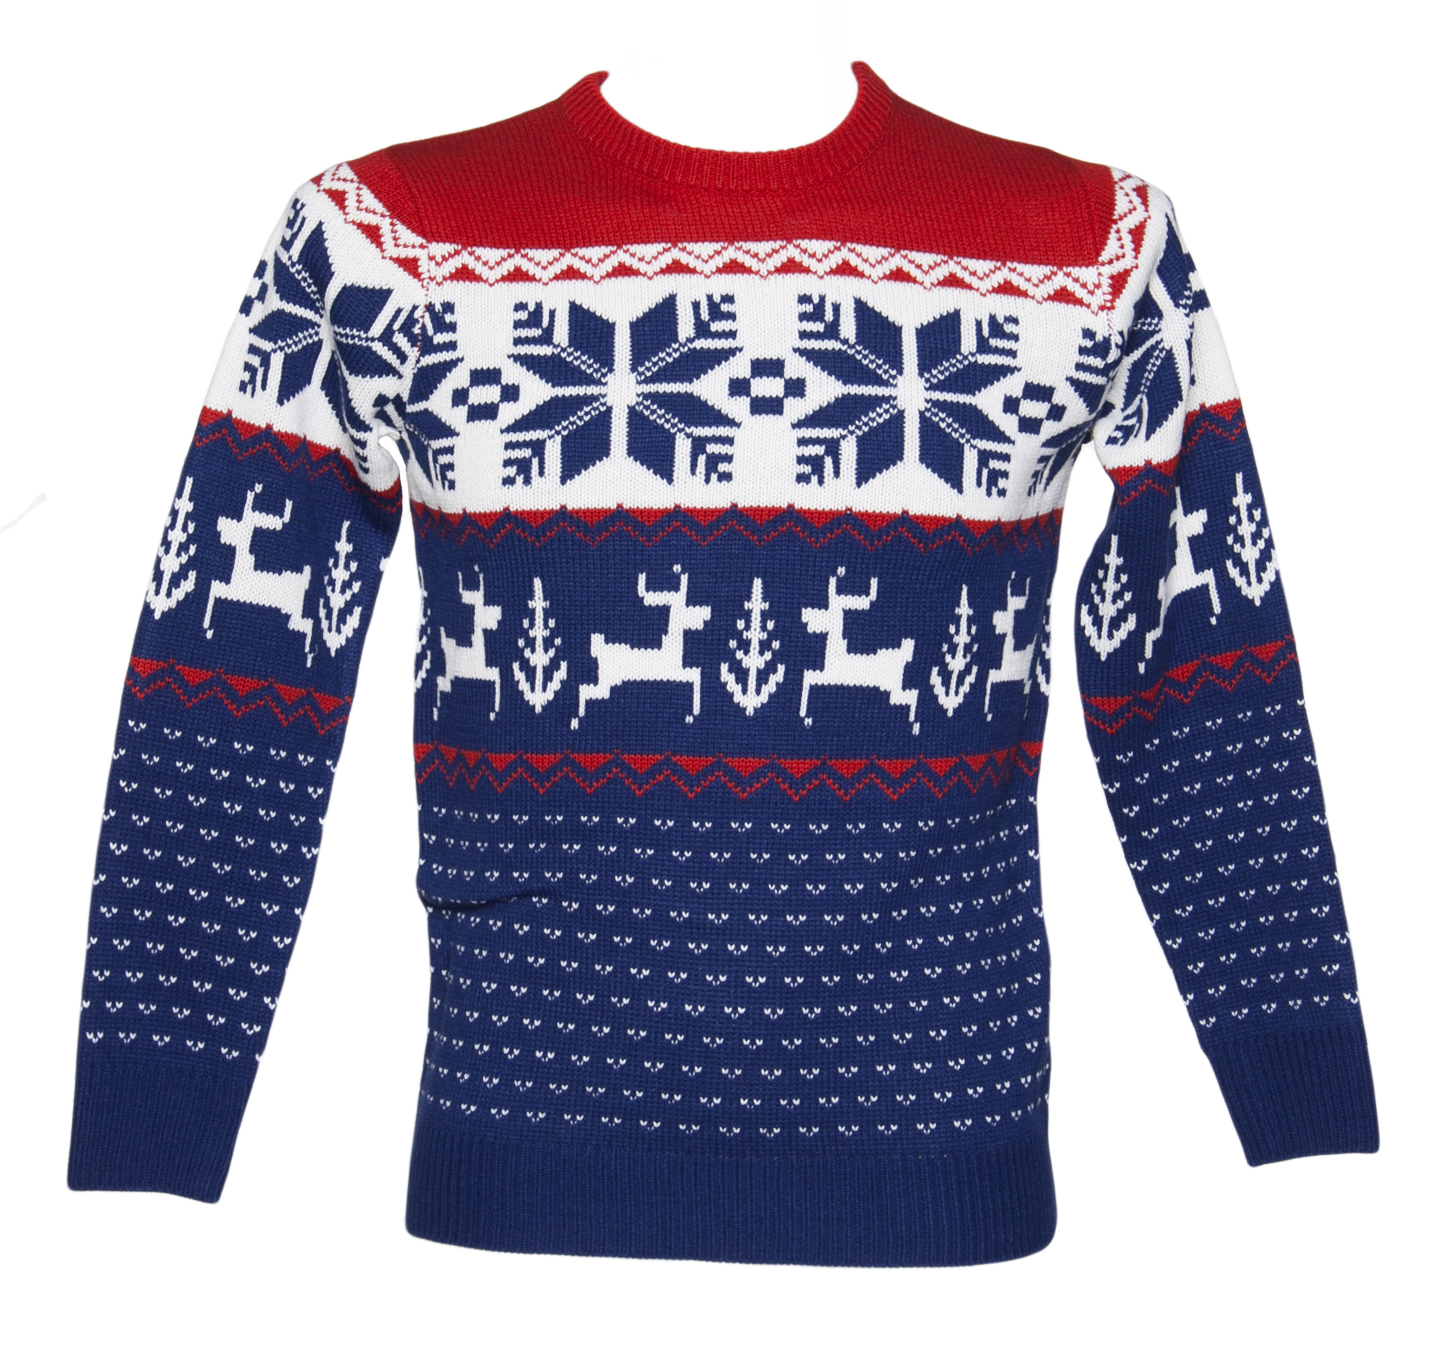 Merchoid Mystery Knitted Christmas Sweater! Christmas Jumpers $ $ Add to Wishlist. NFL Christmas Sweaters/Jumpers. Everything we sell is % officially licensed, so you can be confident anything you buy will be of the highest quality and give you that warm, fuzzy feeling that only comes from supporting the creators.